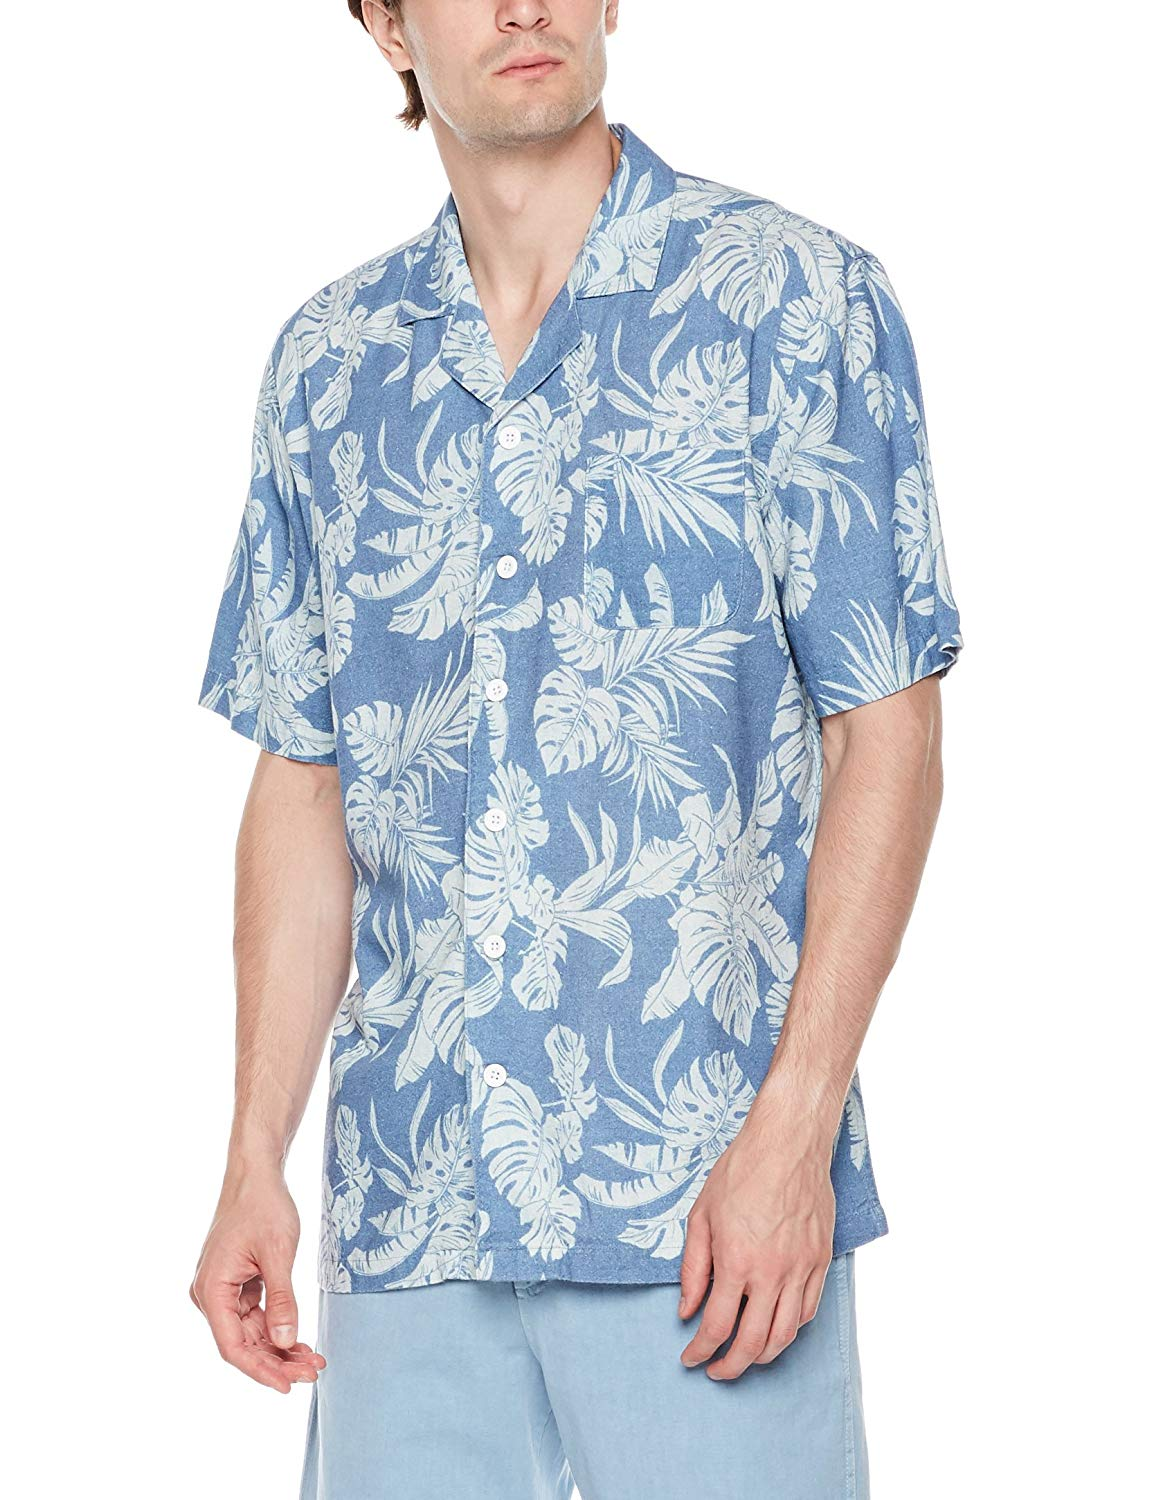 dff2ebced Get Quotations · Isle Bay Linens Men's Relaxed-Fit Short Sleeve Vintage  Linen Blend Cotton Casual Hawaiian Shirt